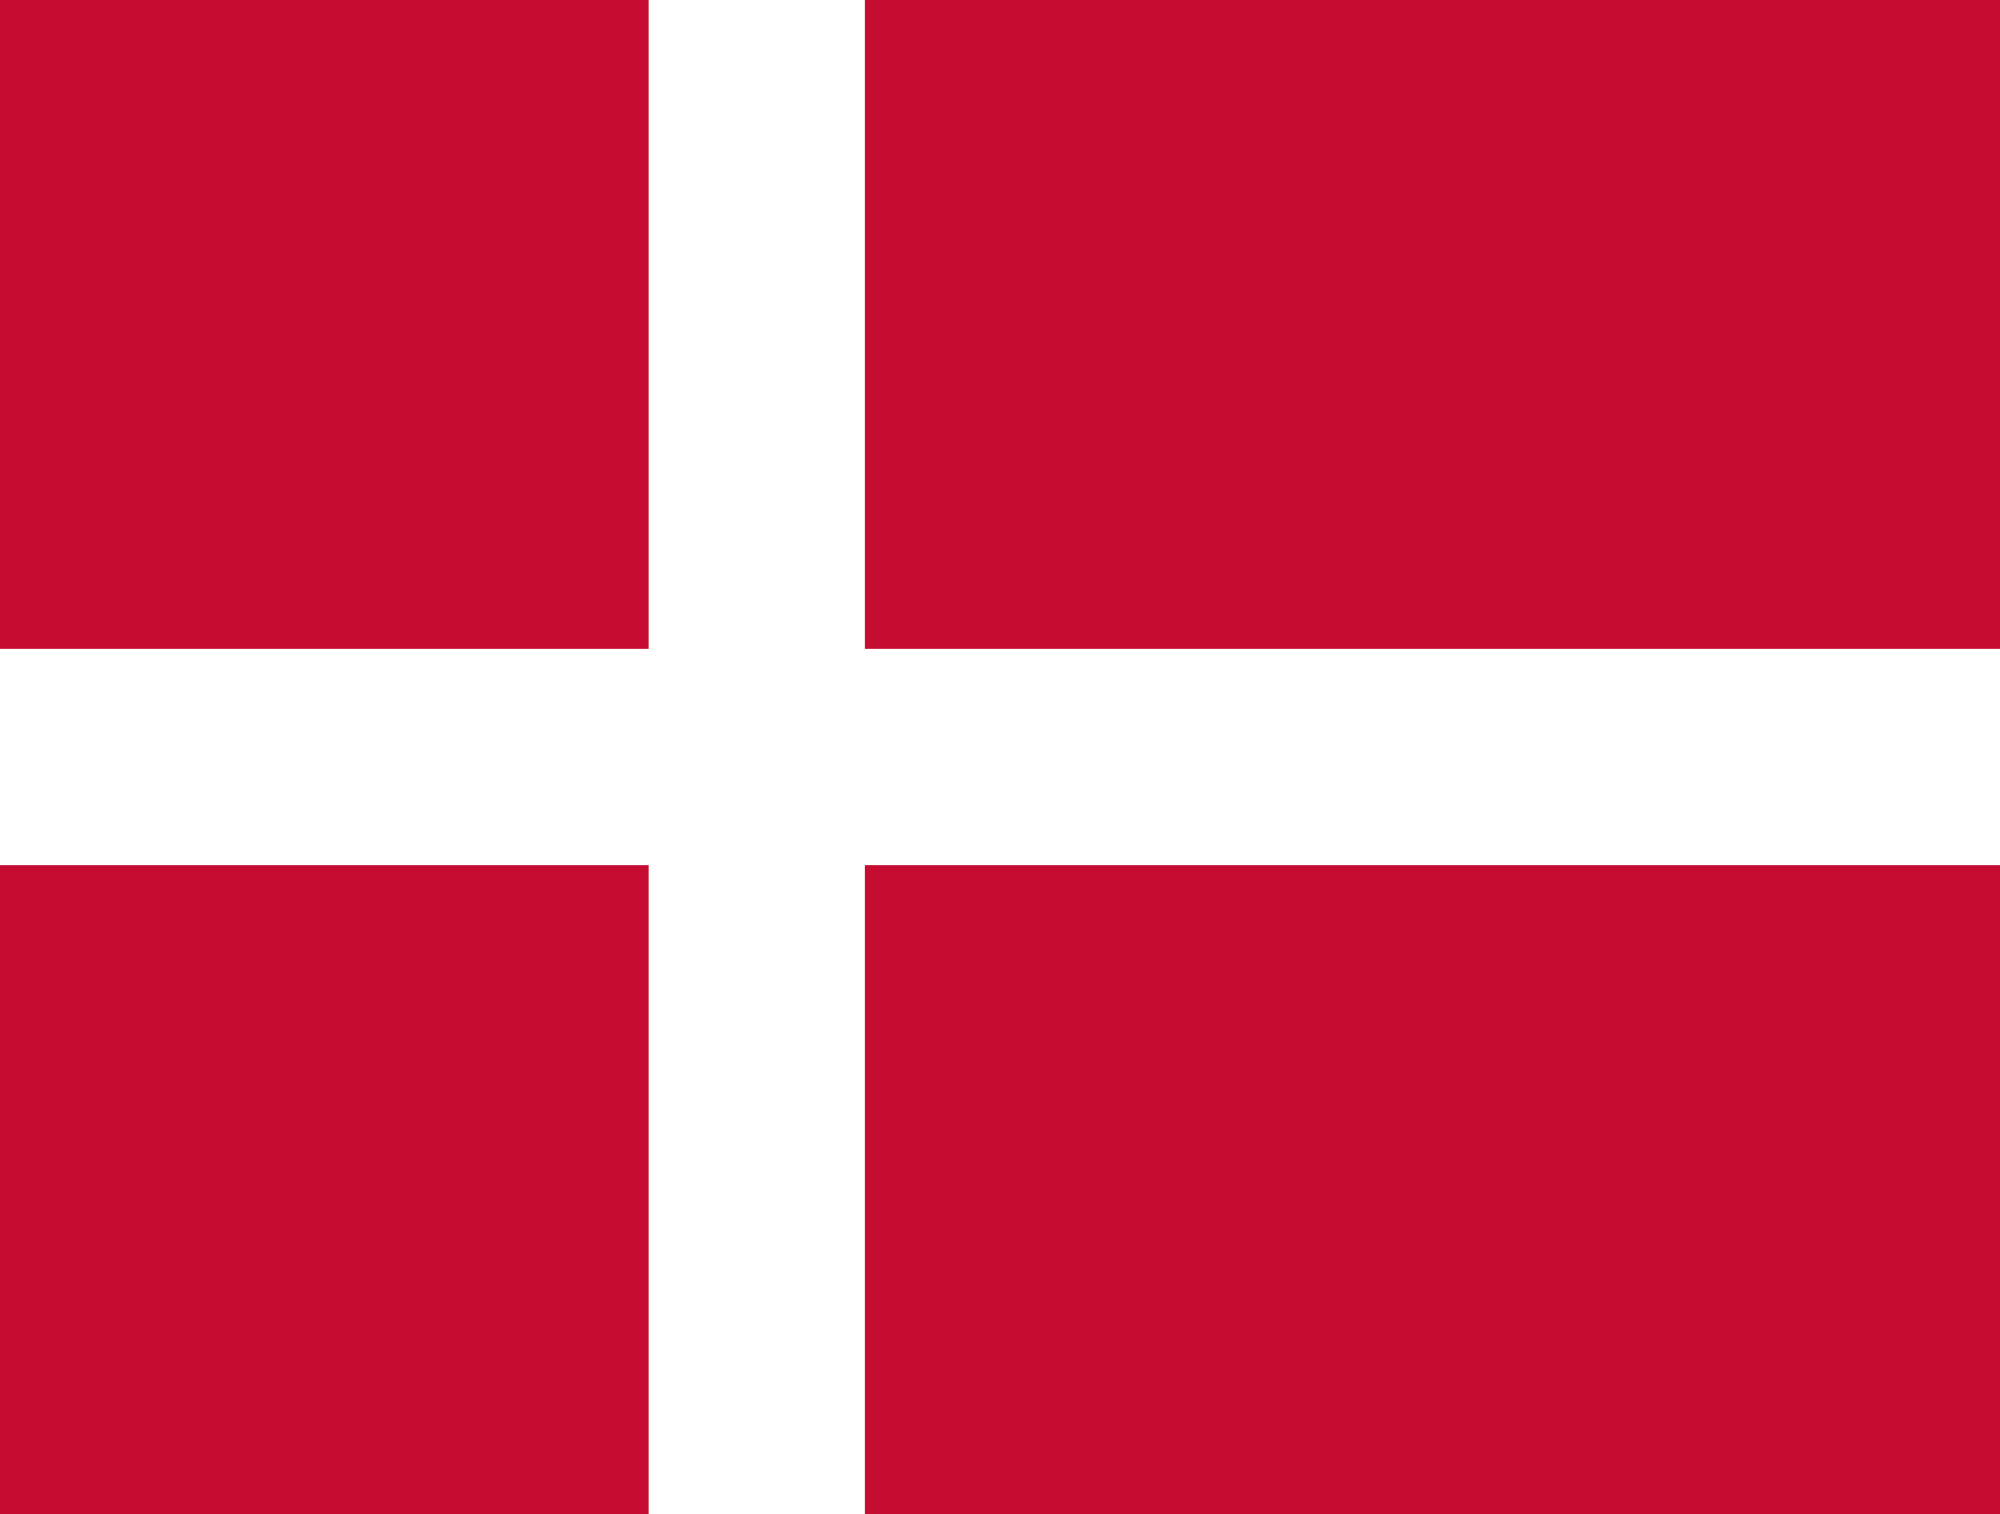 In our gratitude for Pastor Guldhammer, who was born in Denmark, we display this week the Danish flag, dressed in Christmas red and the Cross of our Lord.